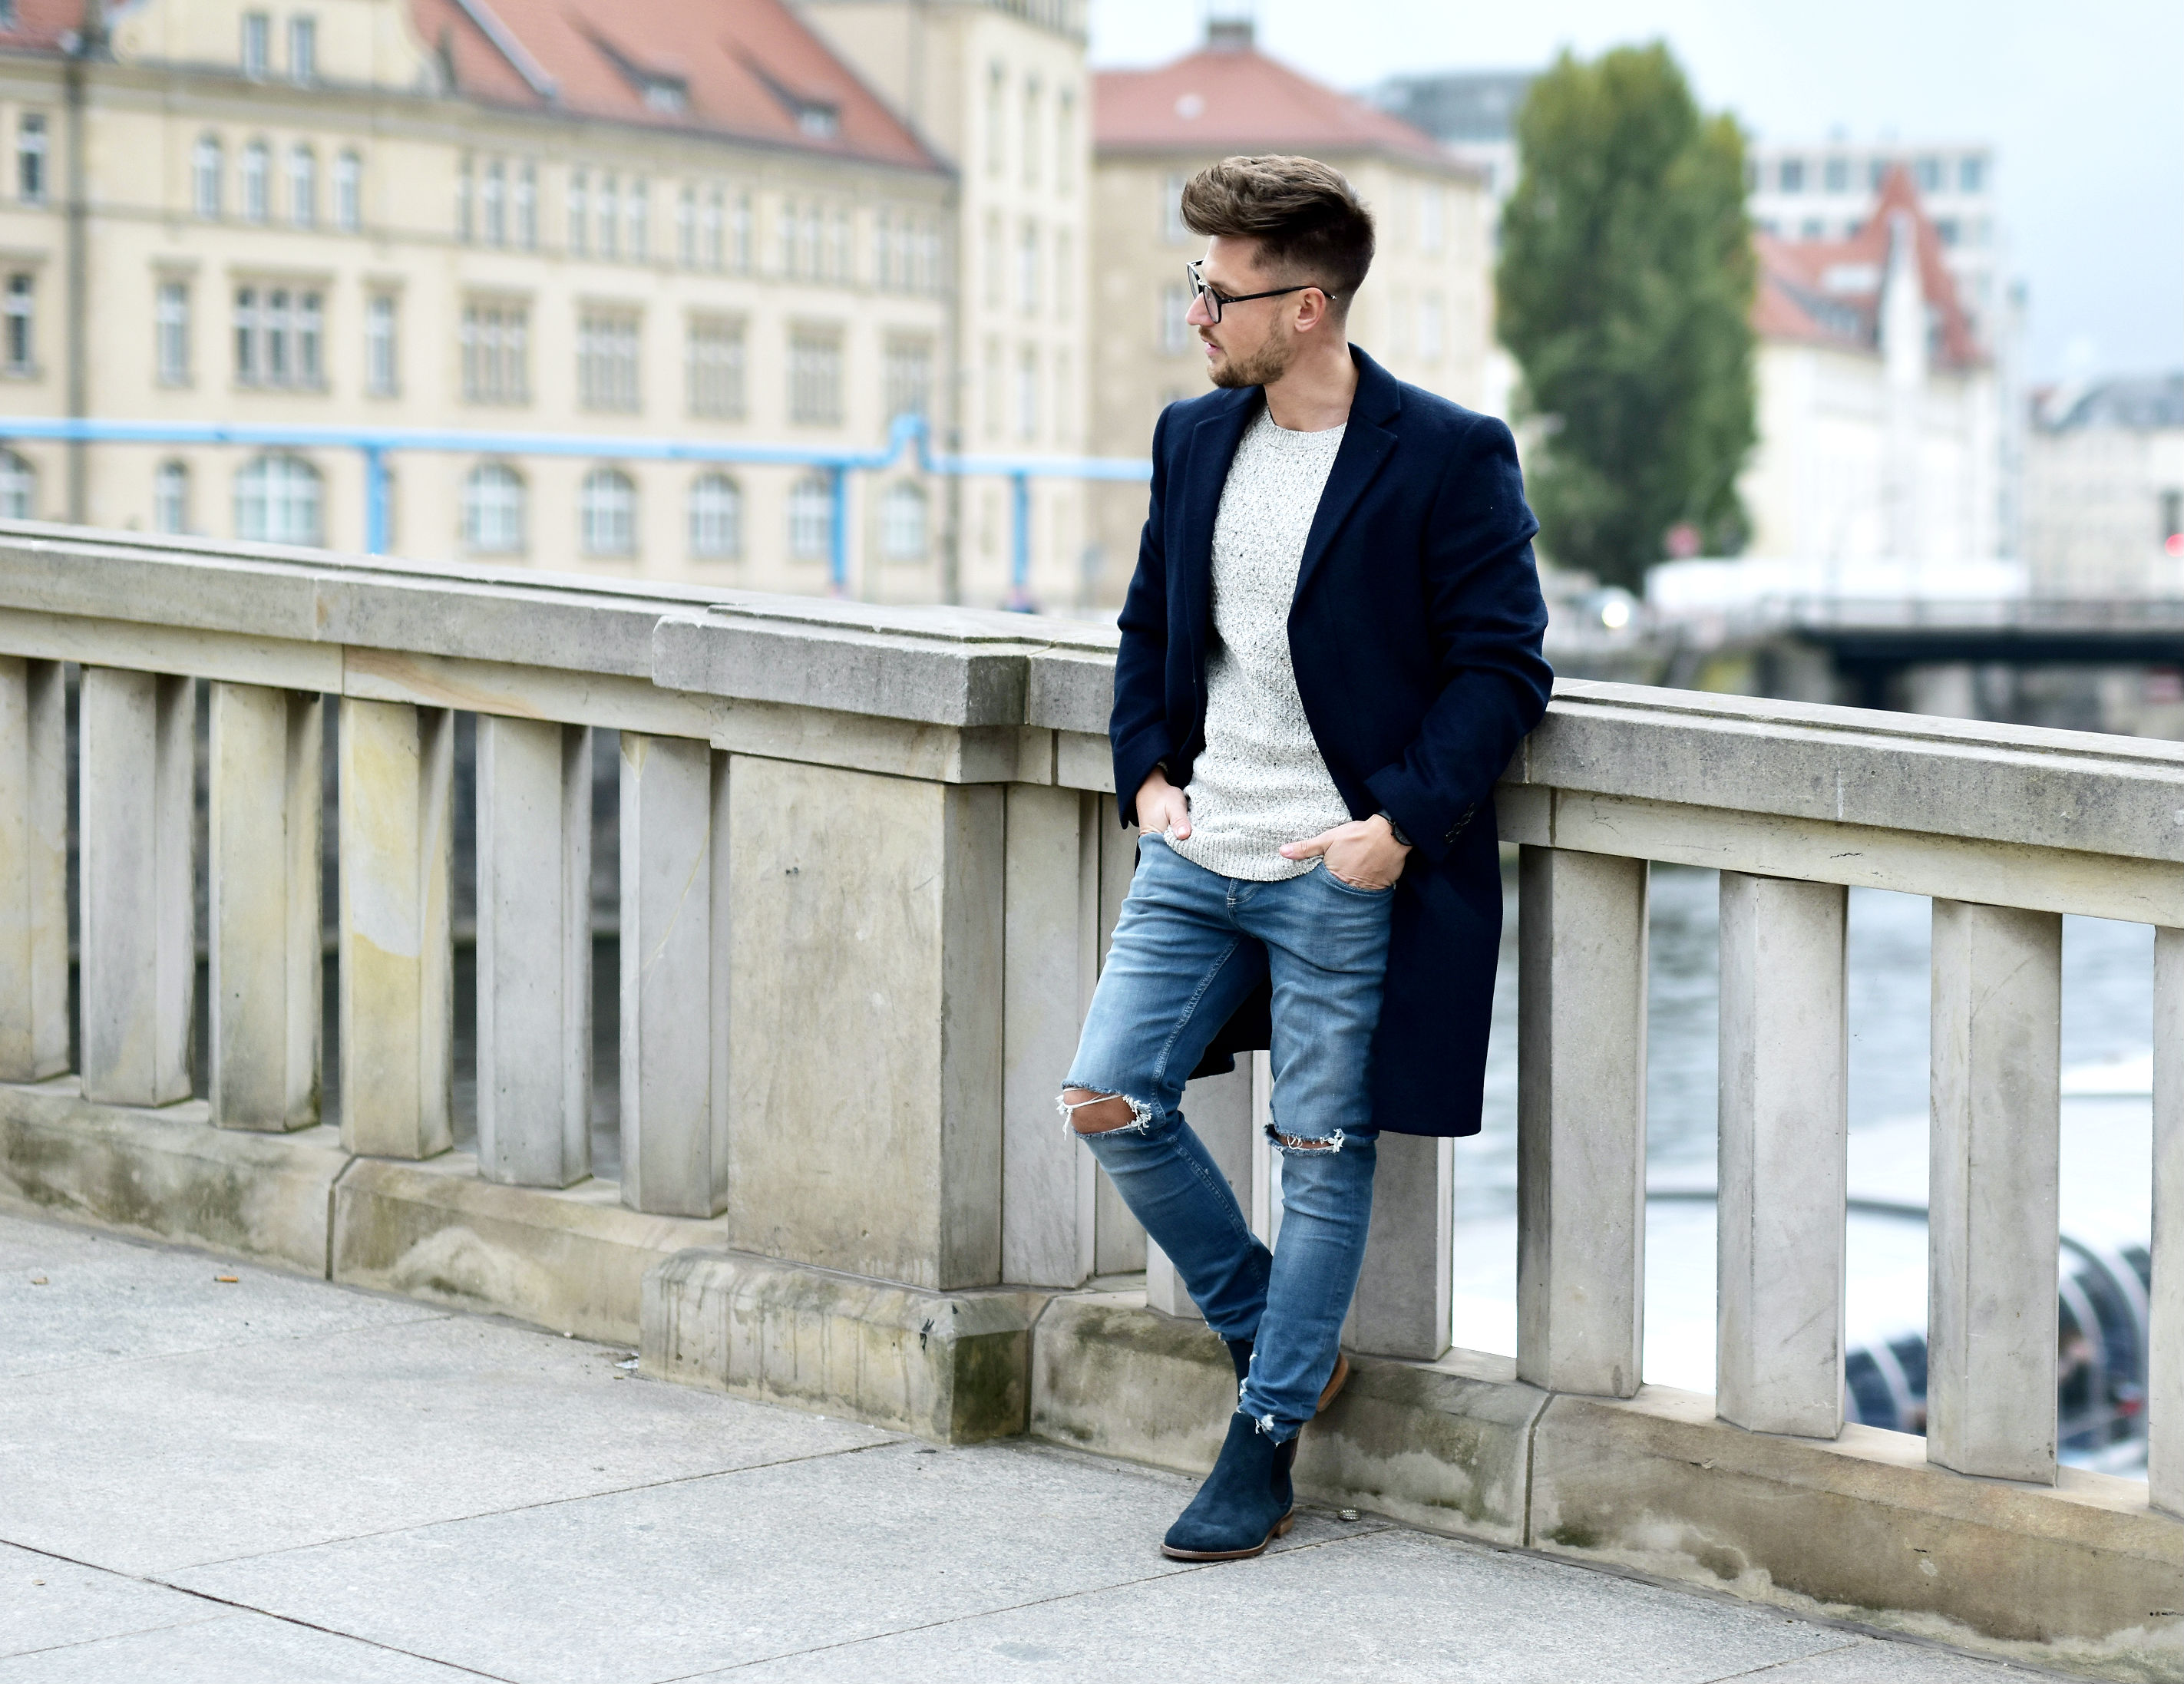 tommeezjerry-styleblog-maennerblog-maenner-modeblog-berlin-berlinblog-maennermodeblog-outfit-mantel-marks-and-spencer-coat-chelsea-boots-autumn-look-8